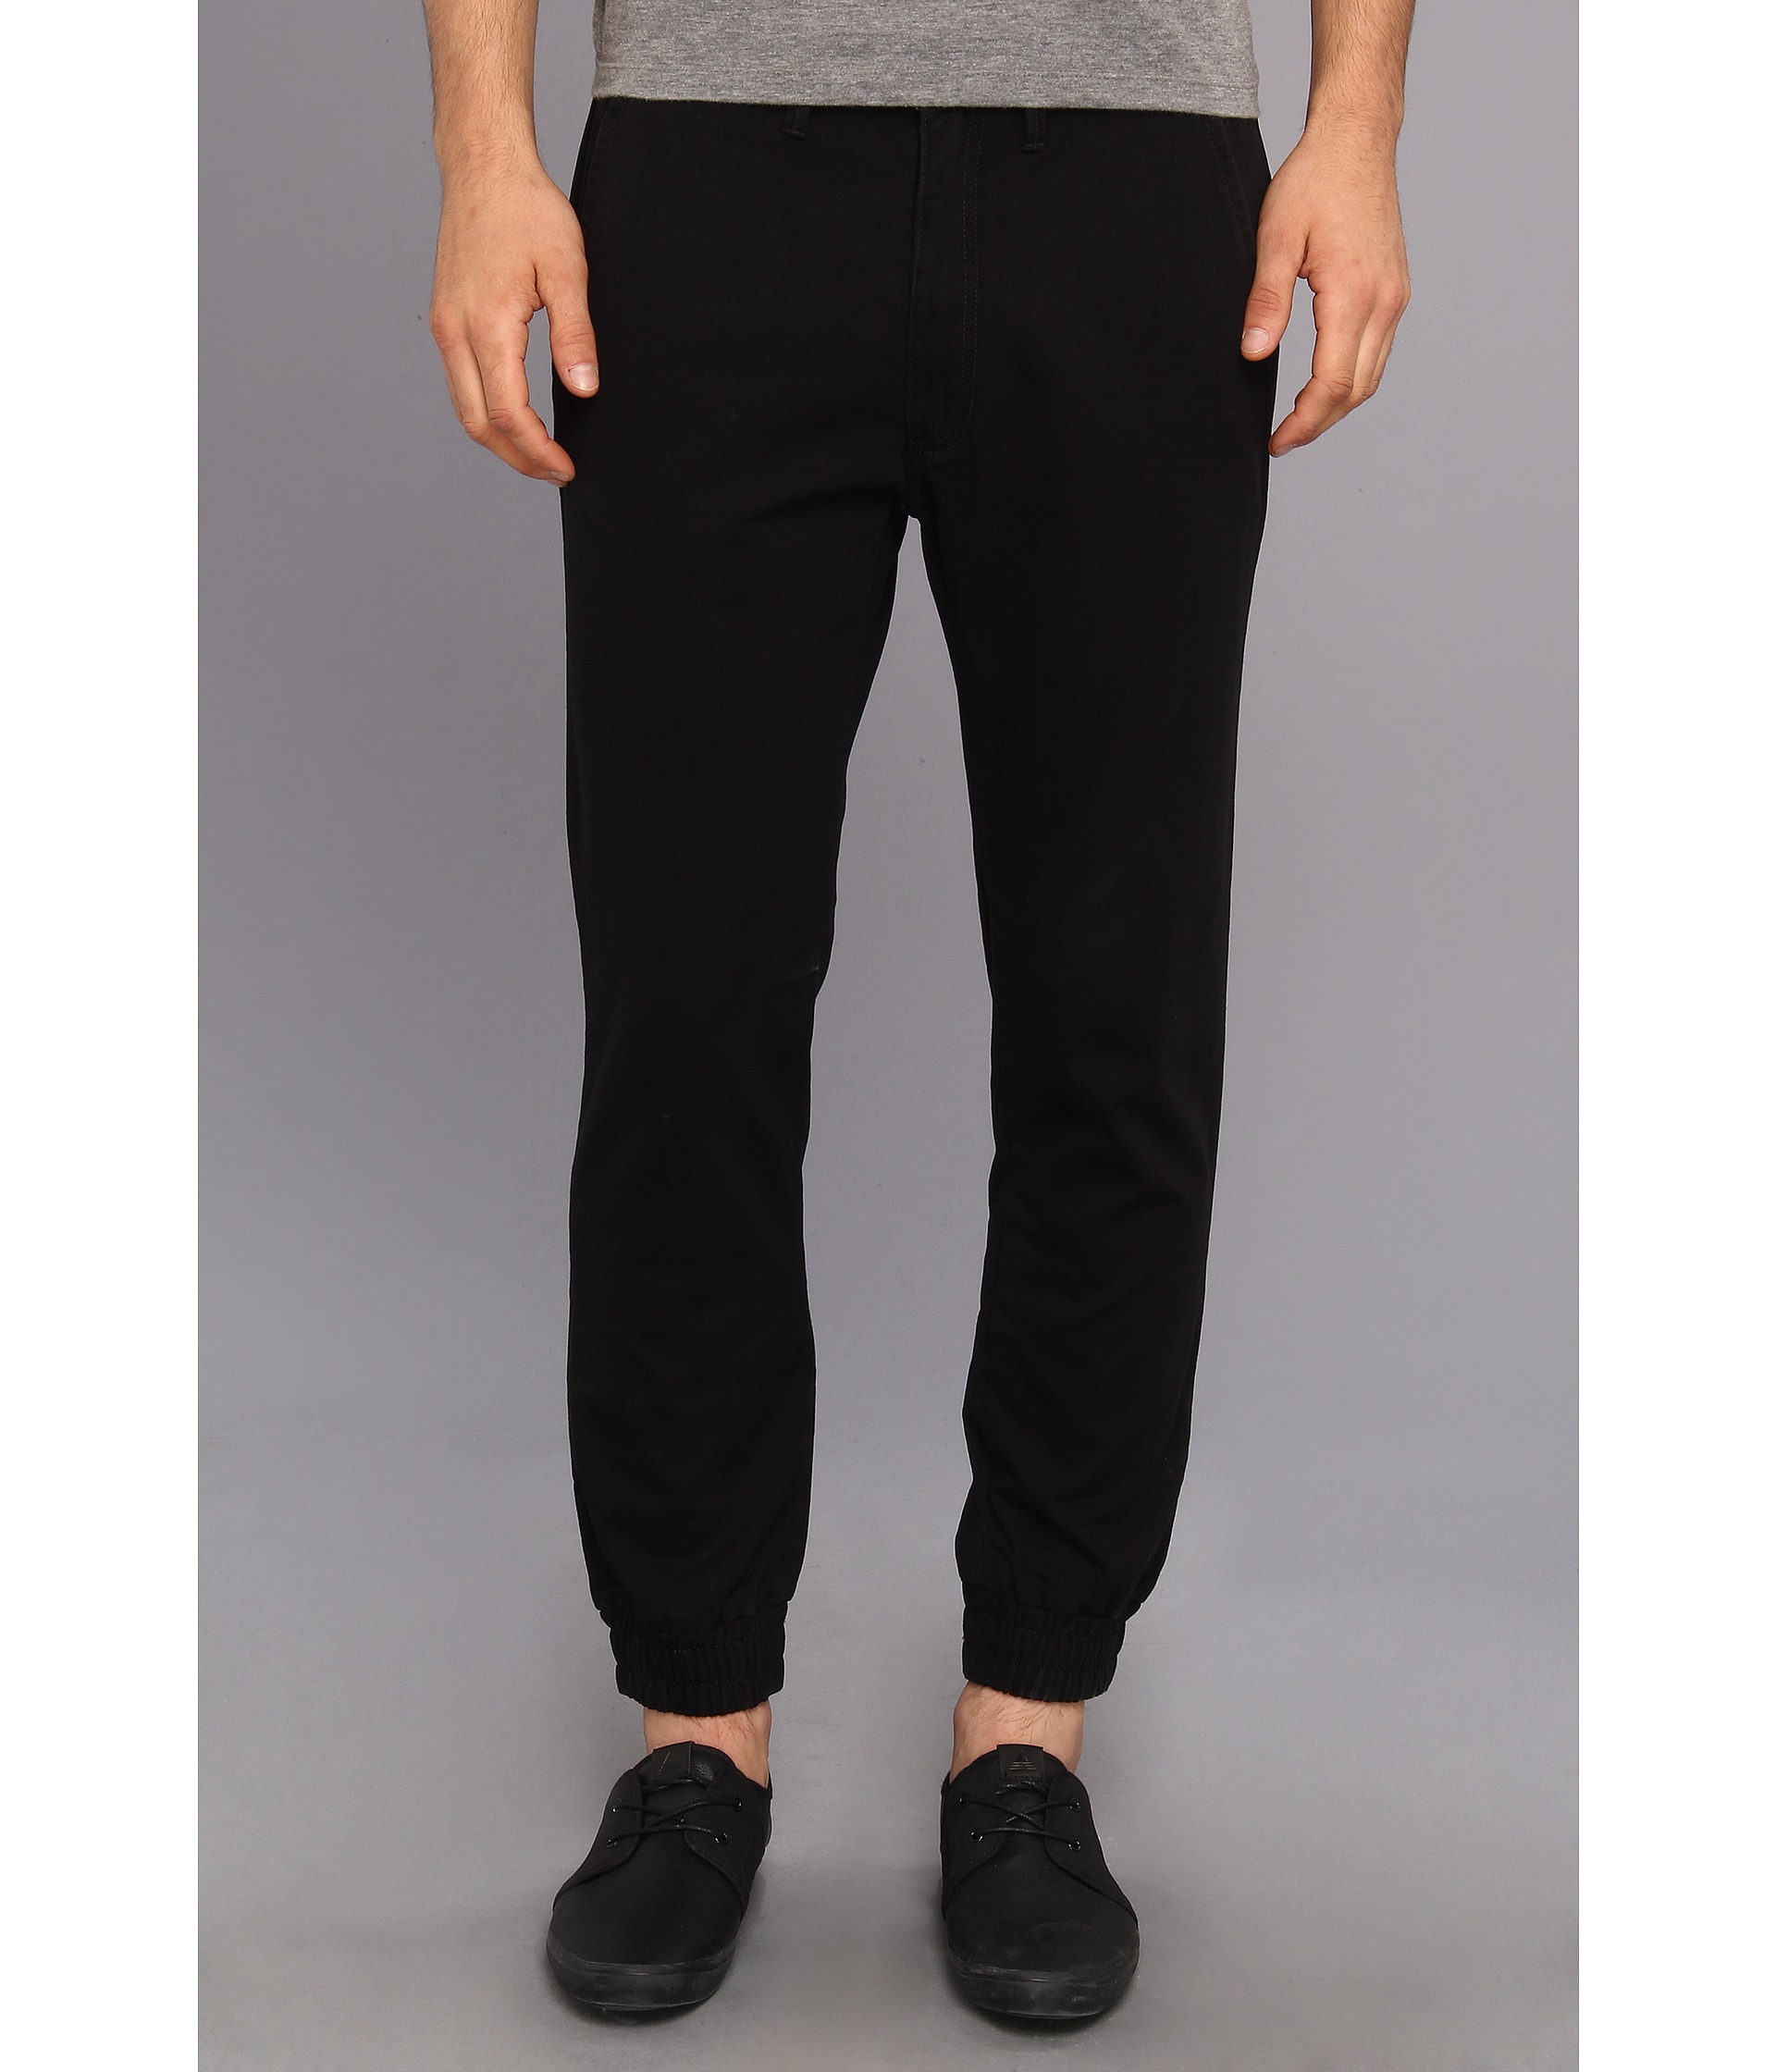 4a631485af Lyst - Vans Excerpt Chino Pegged Pant in Black for Men